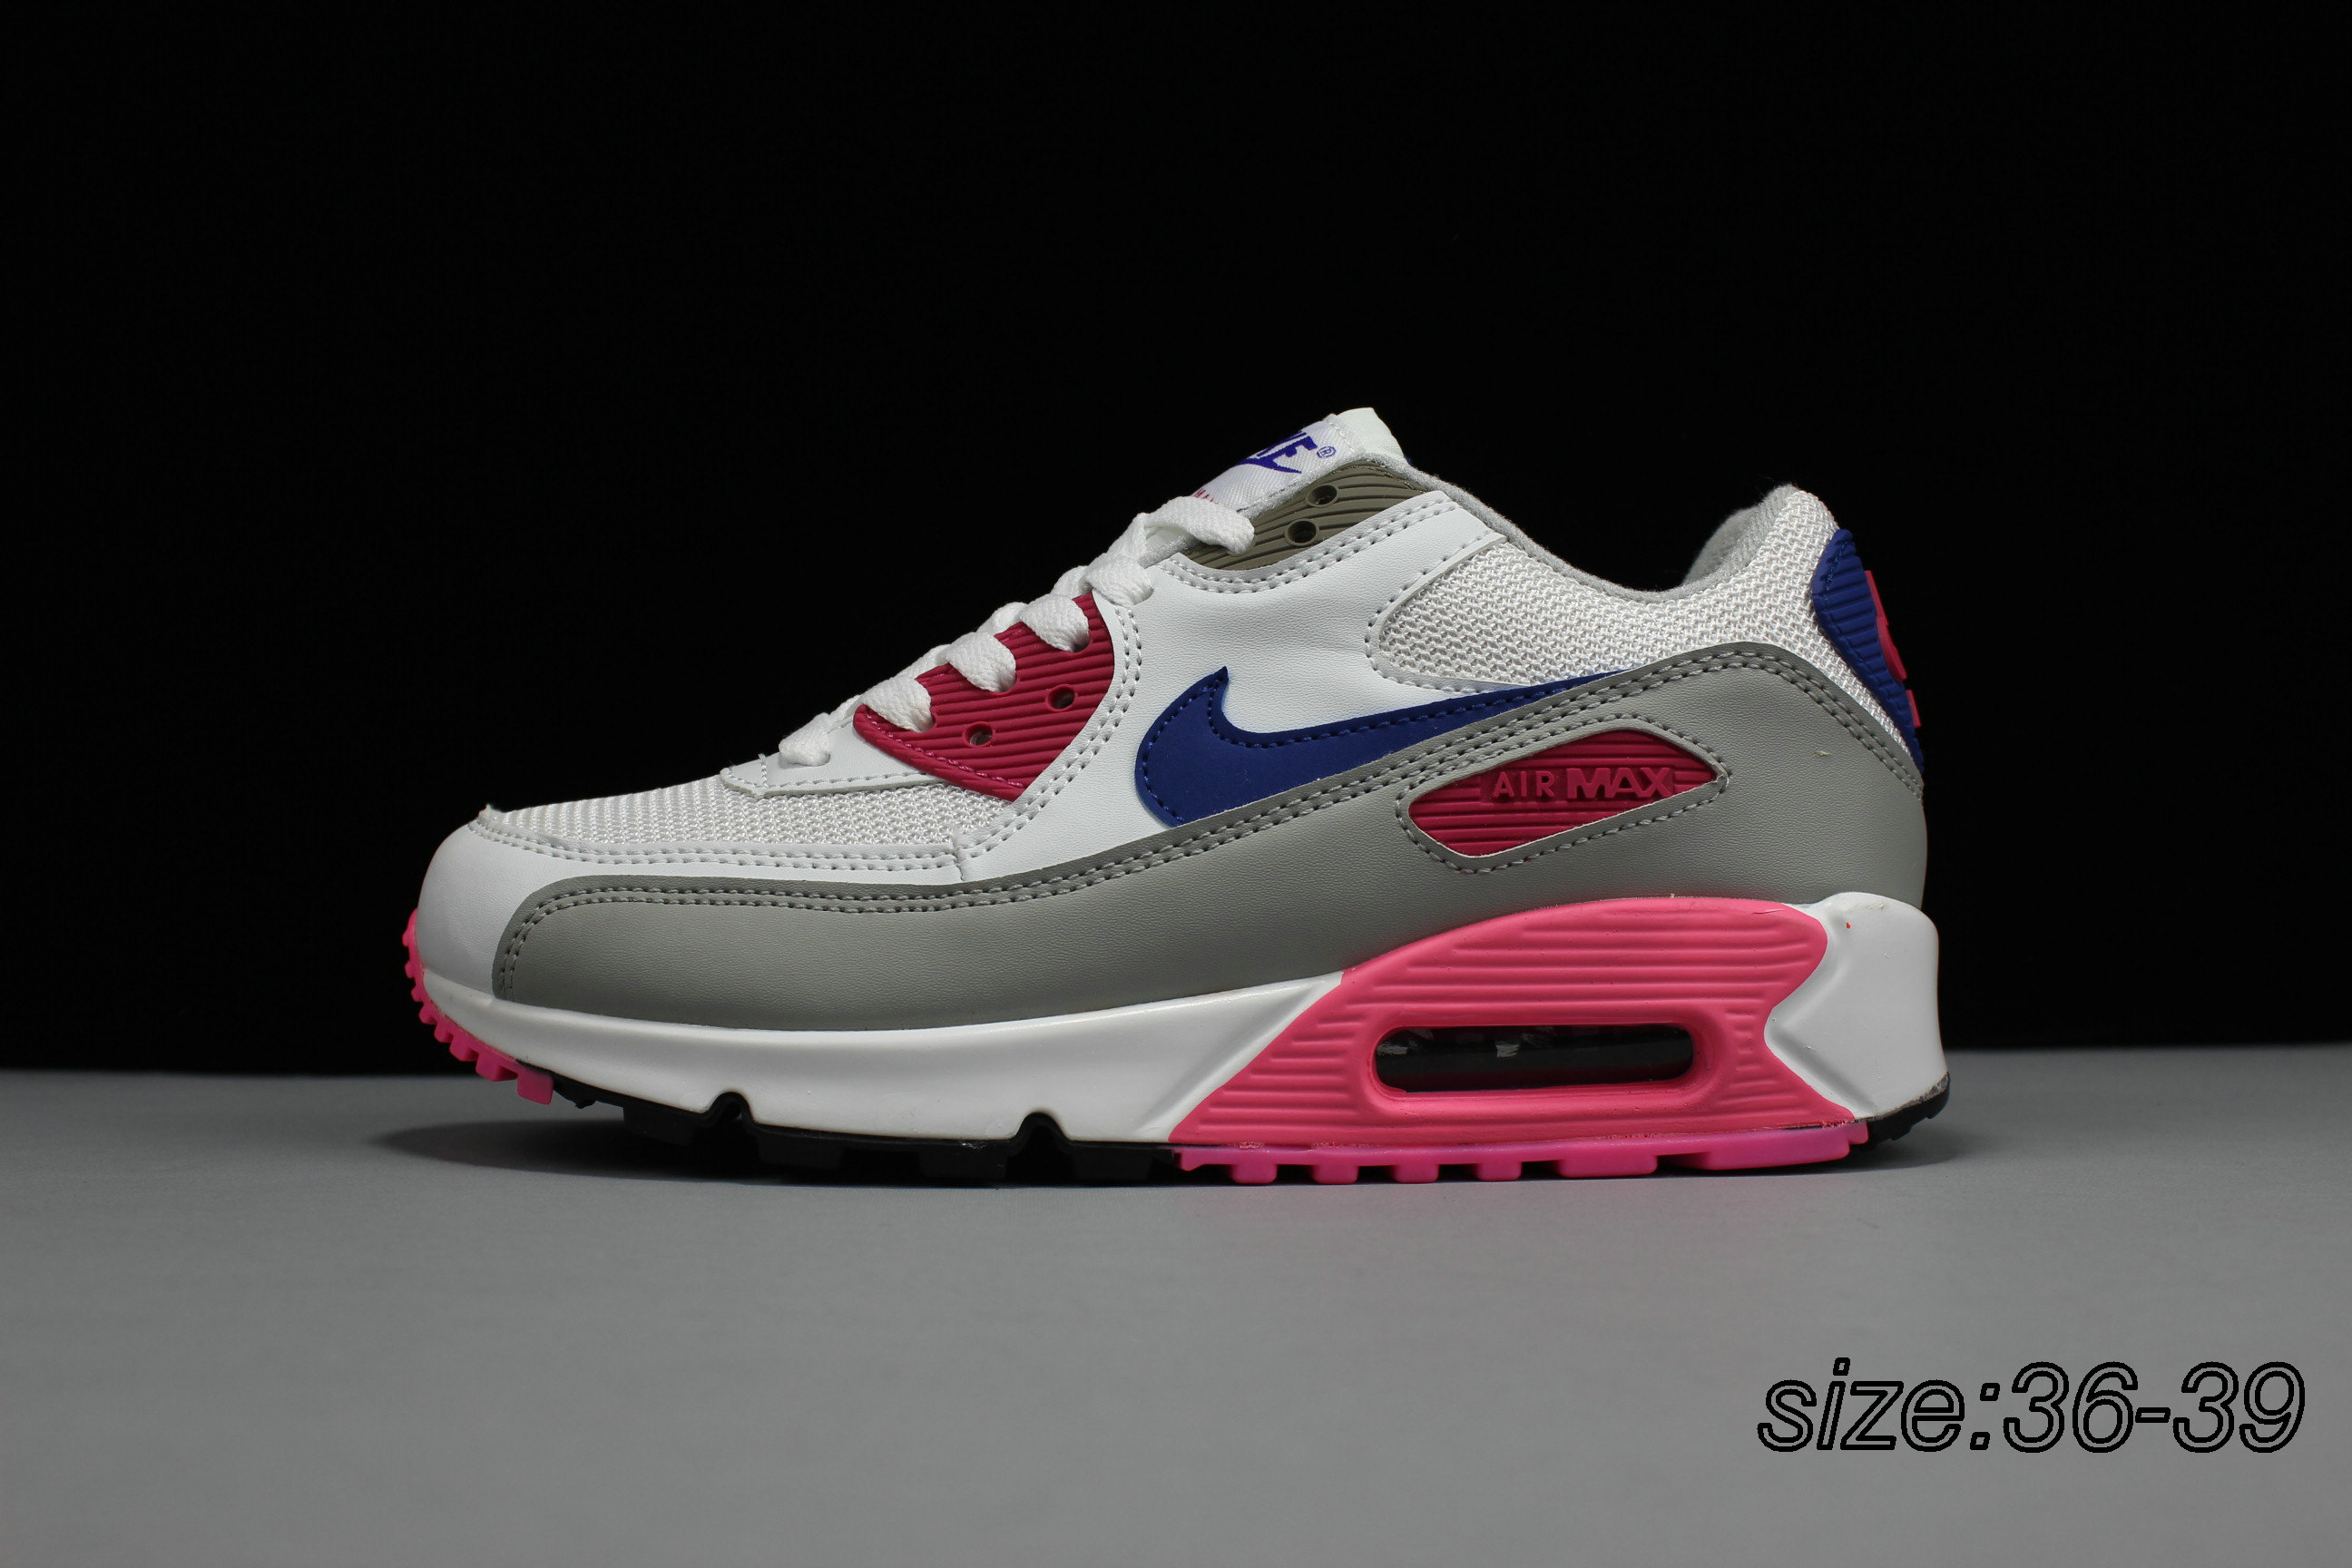 NIKE AIR MAX 90 WHITE PINK BLUE (end 1 26 2021 12 00 AM) 6835eb60330f